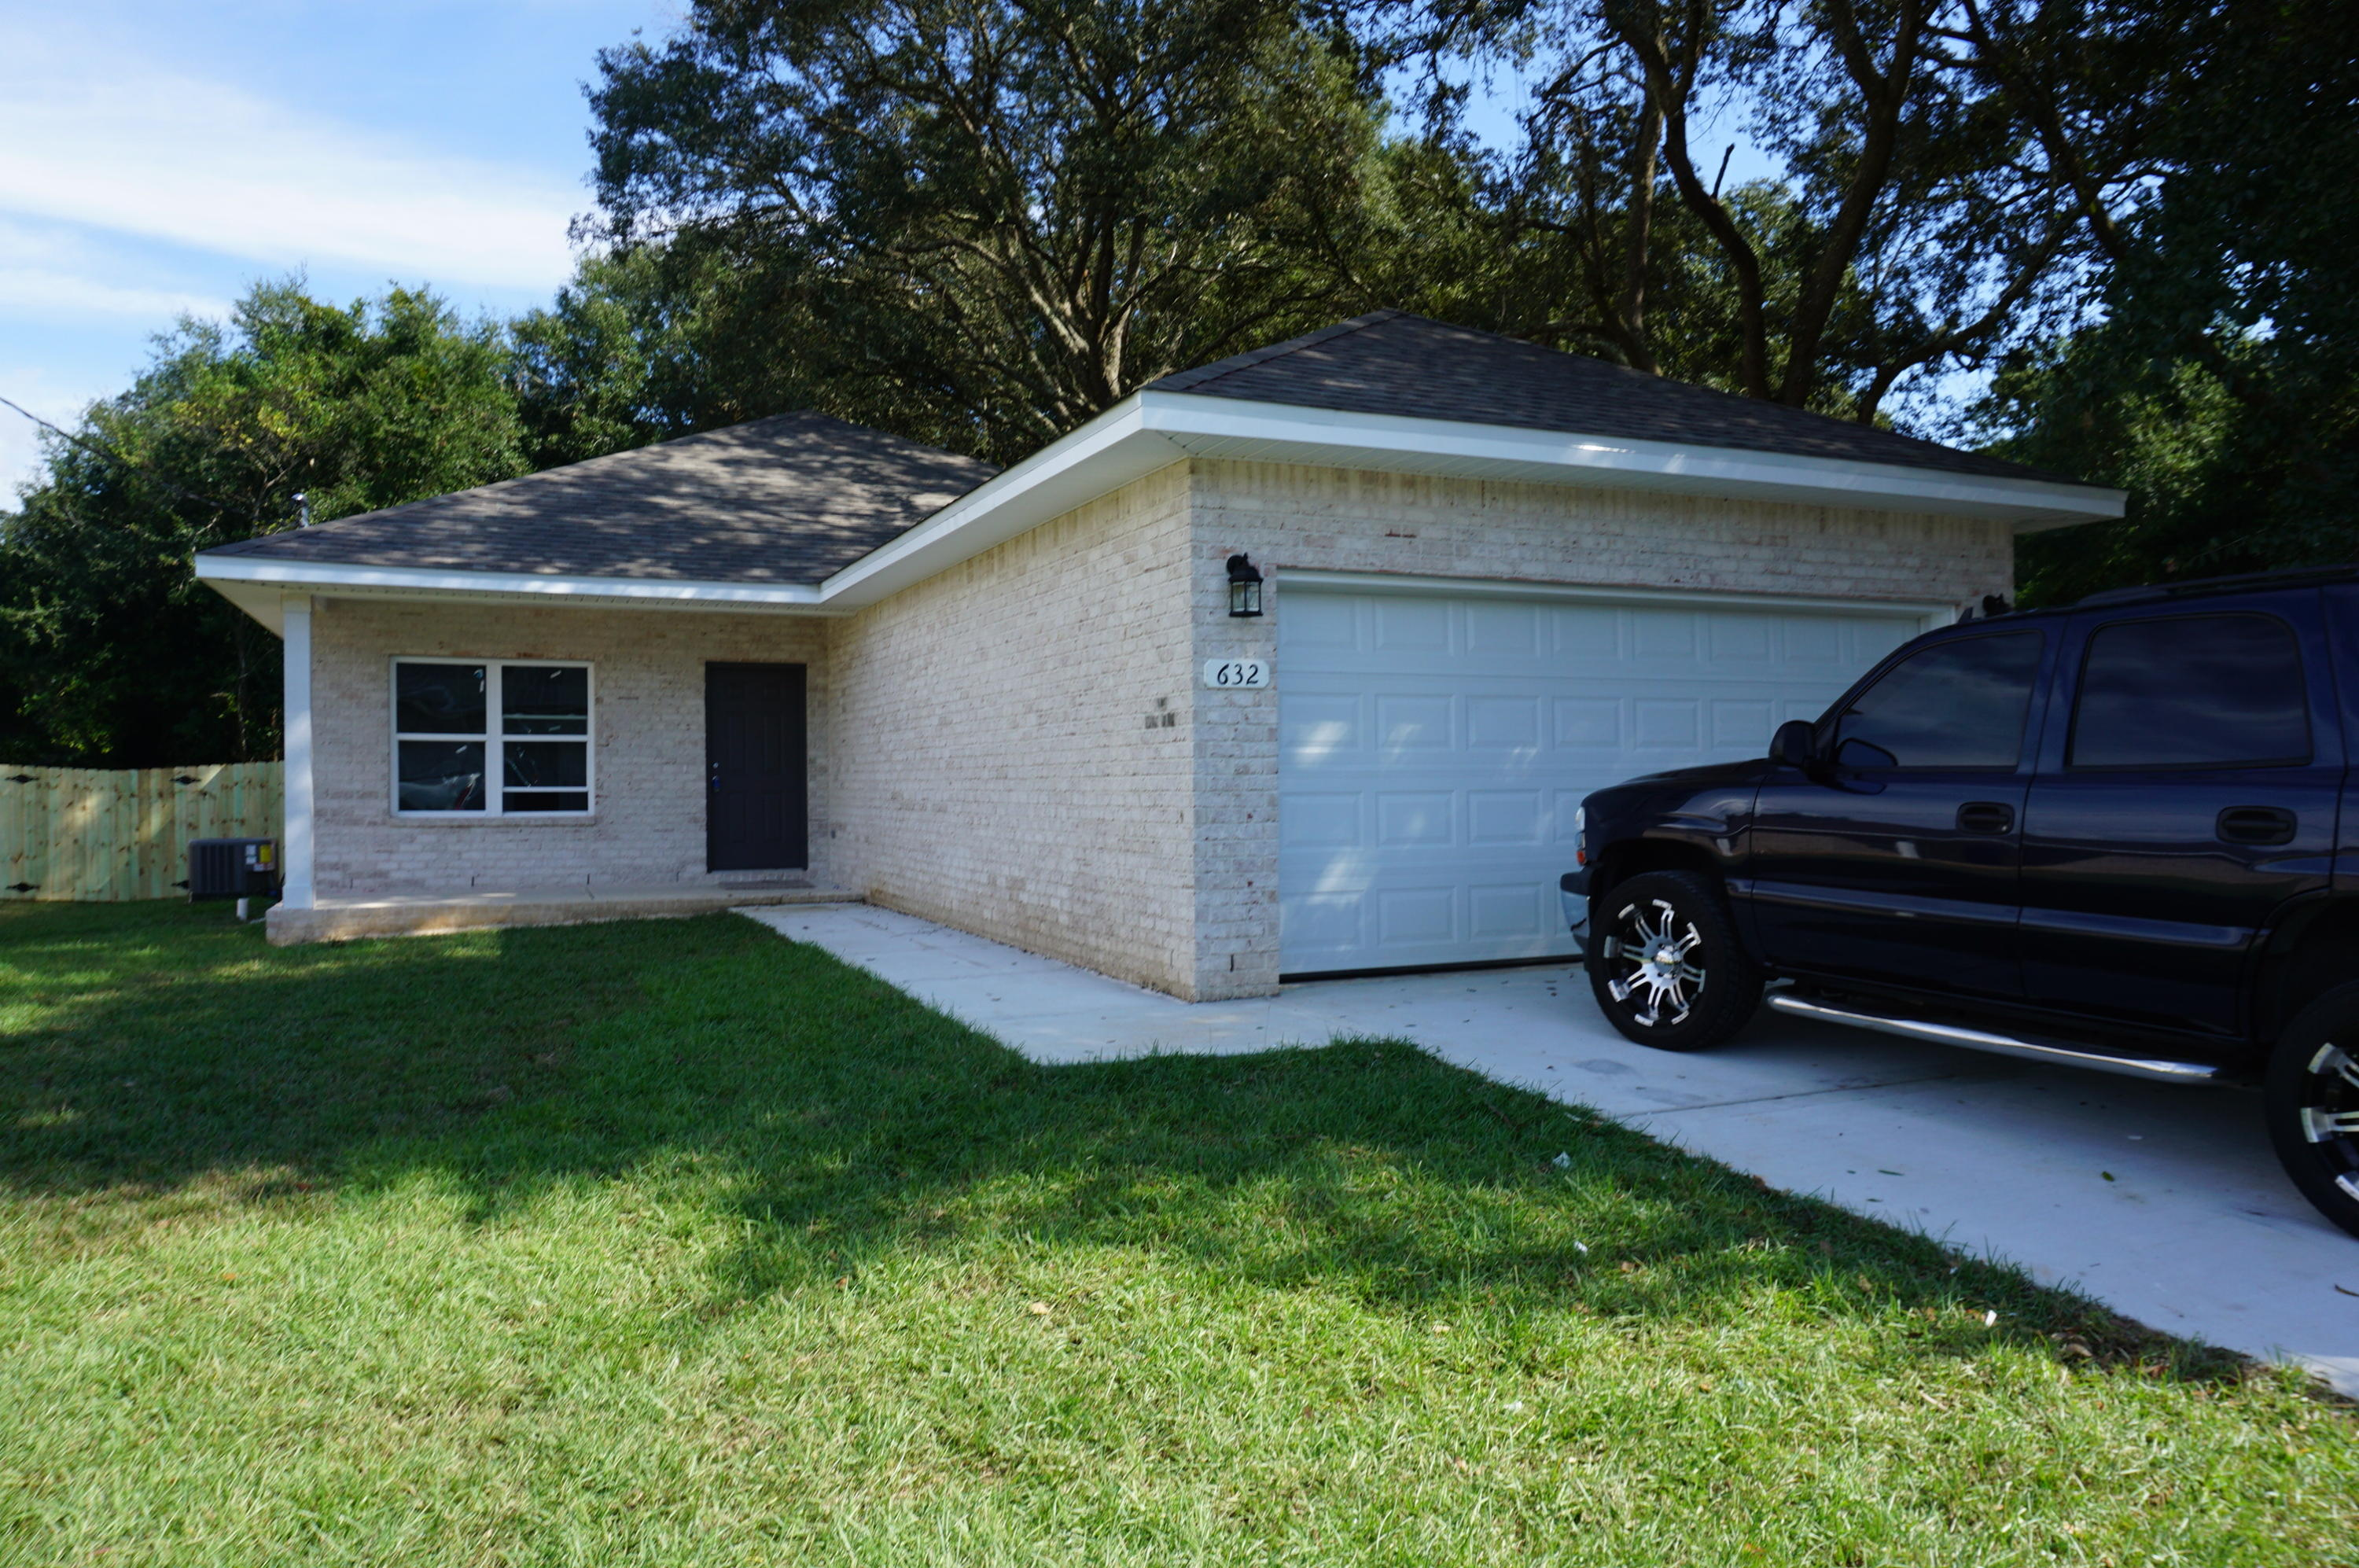 Photo of home for sale at 632 Ginkgo, Niceville FL